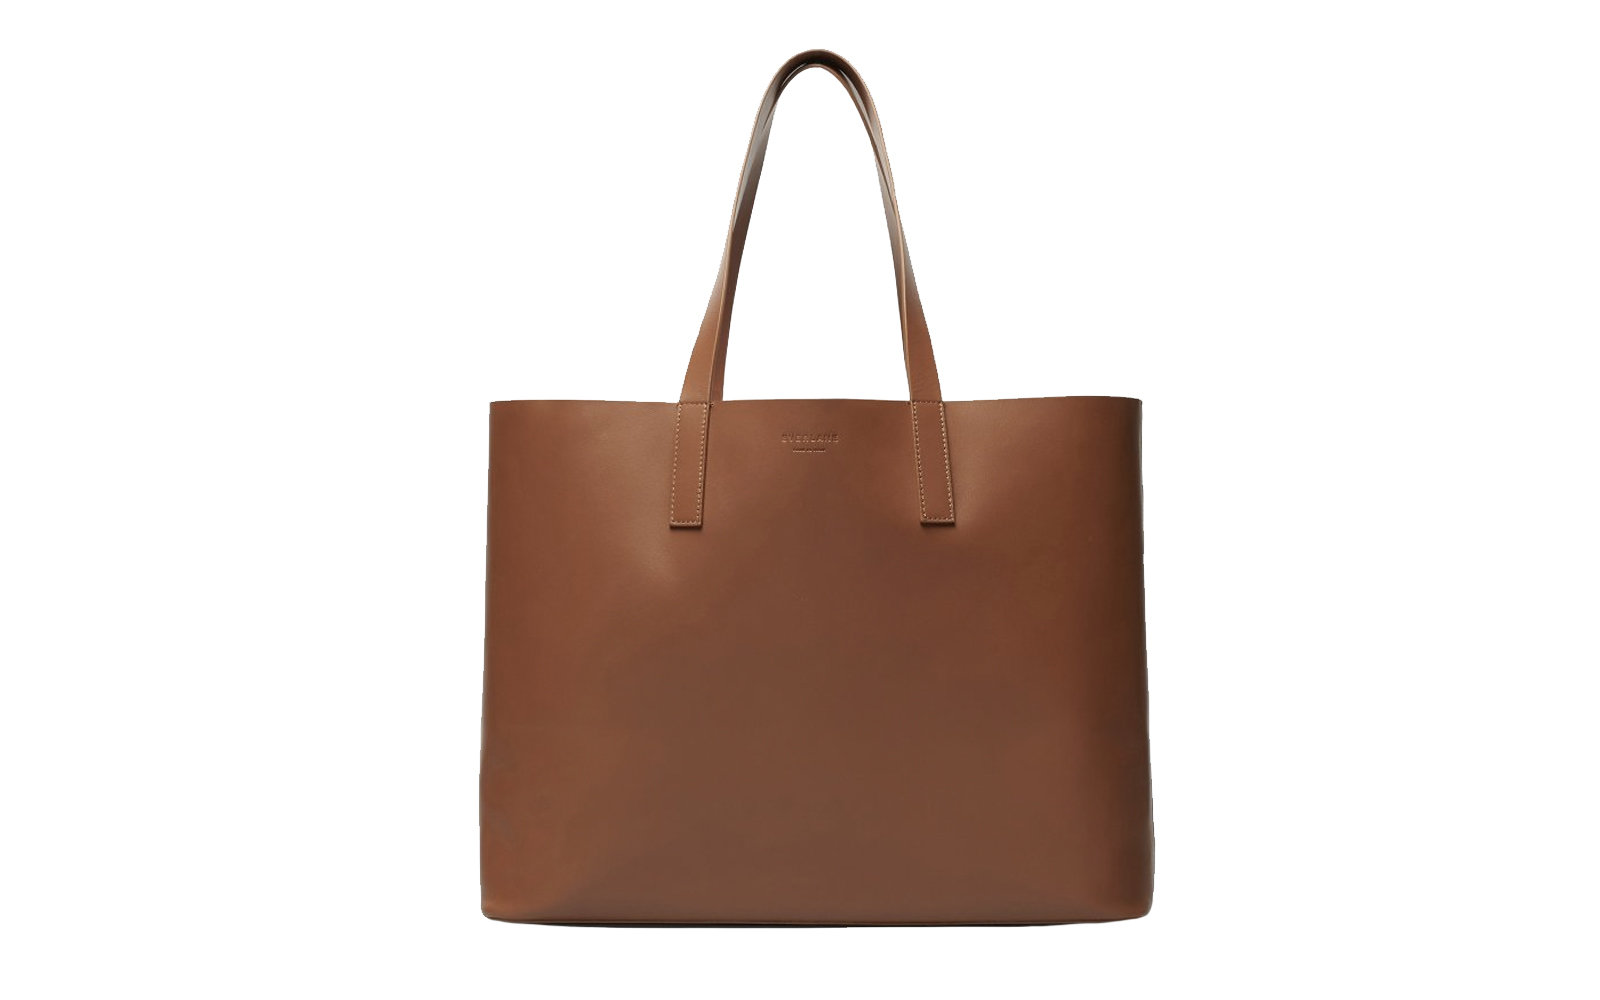 Everlane Day Market Tote Bag